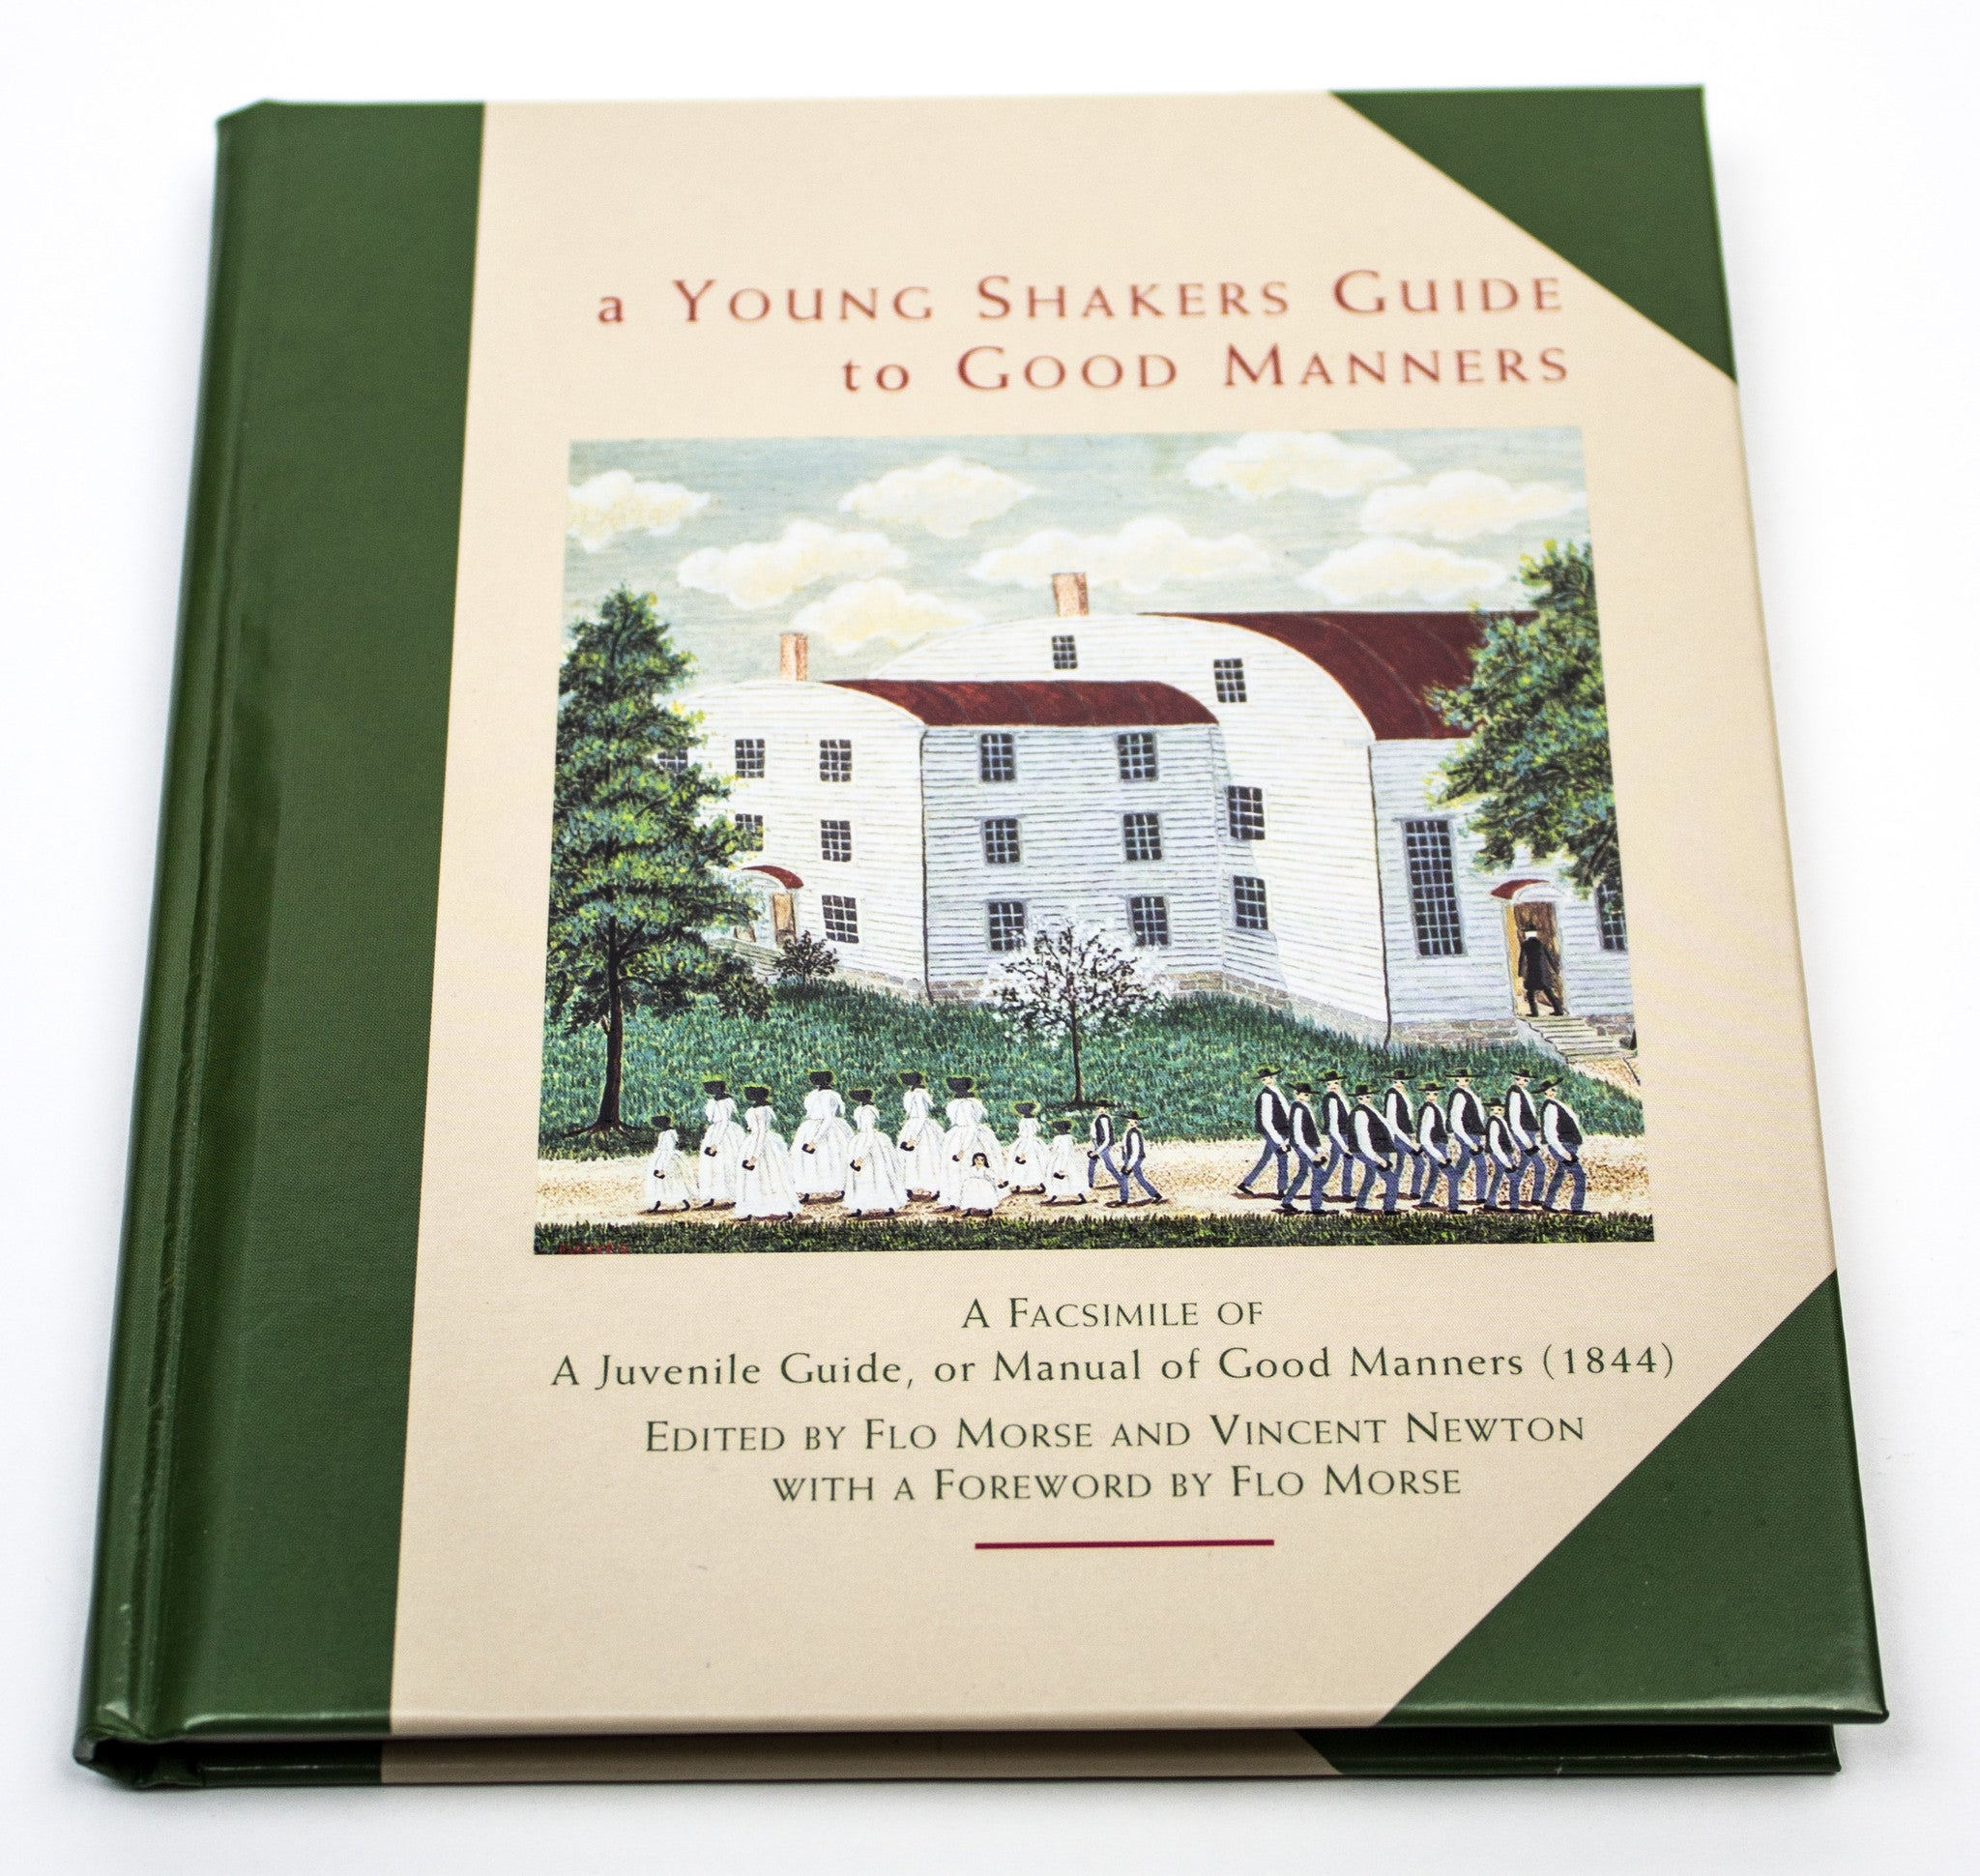 A Young Shakers' Guide to Good Manners